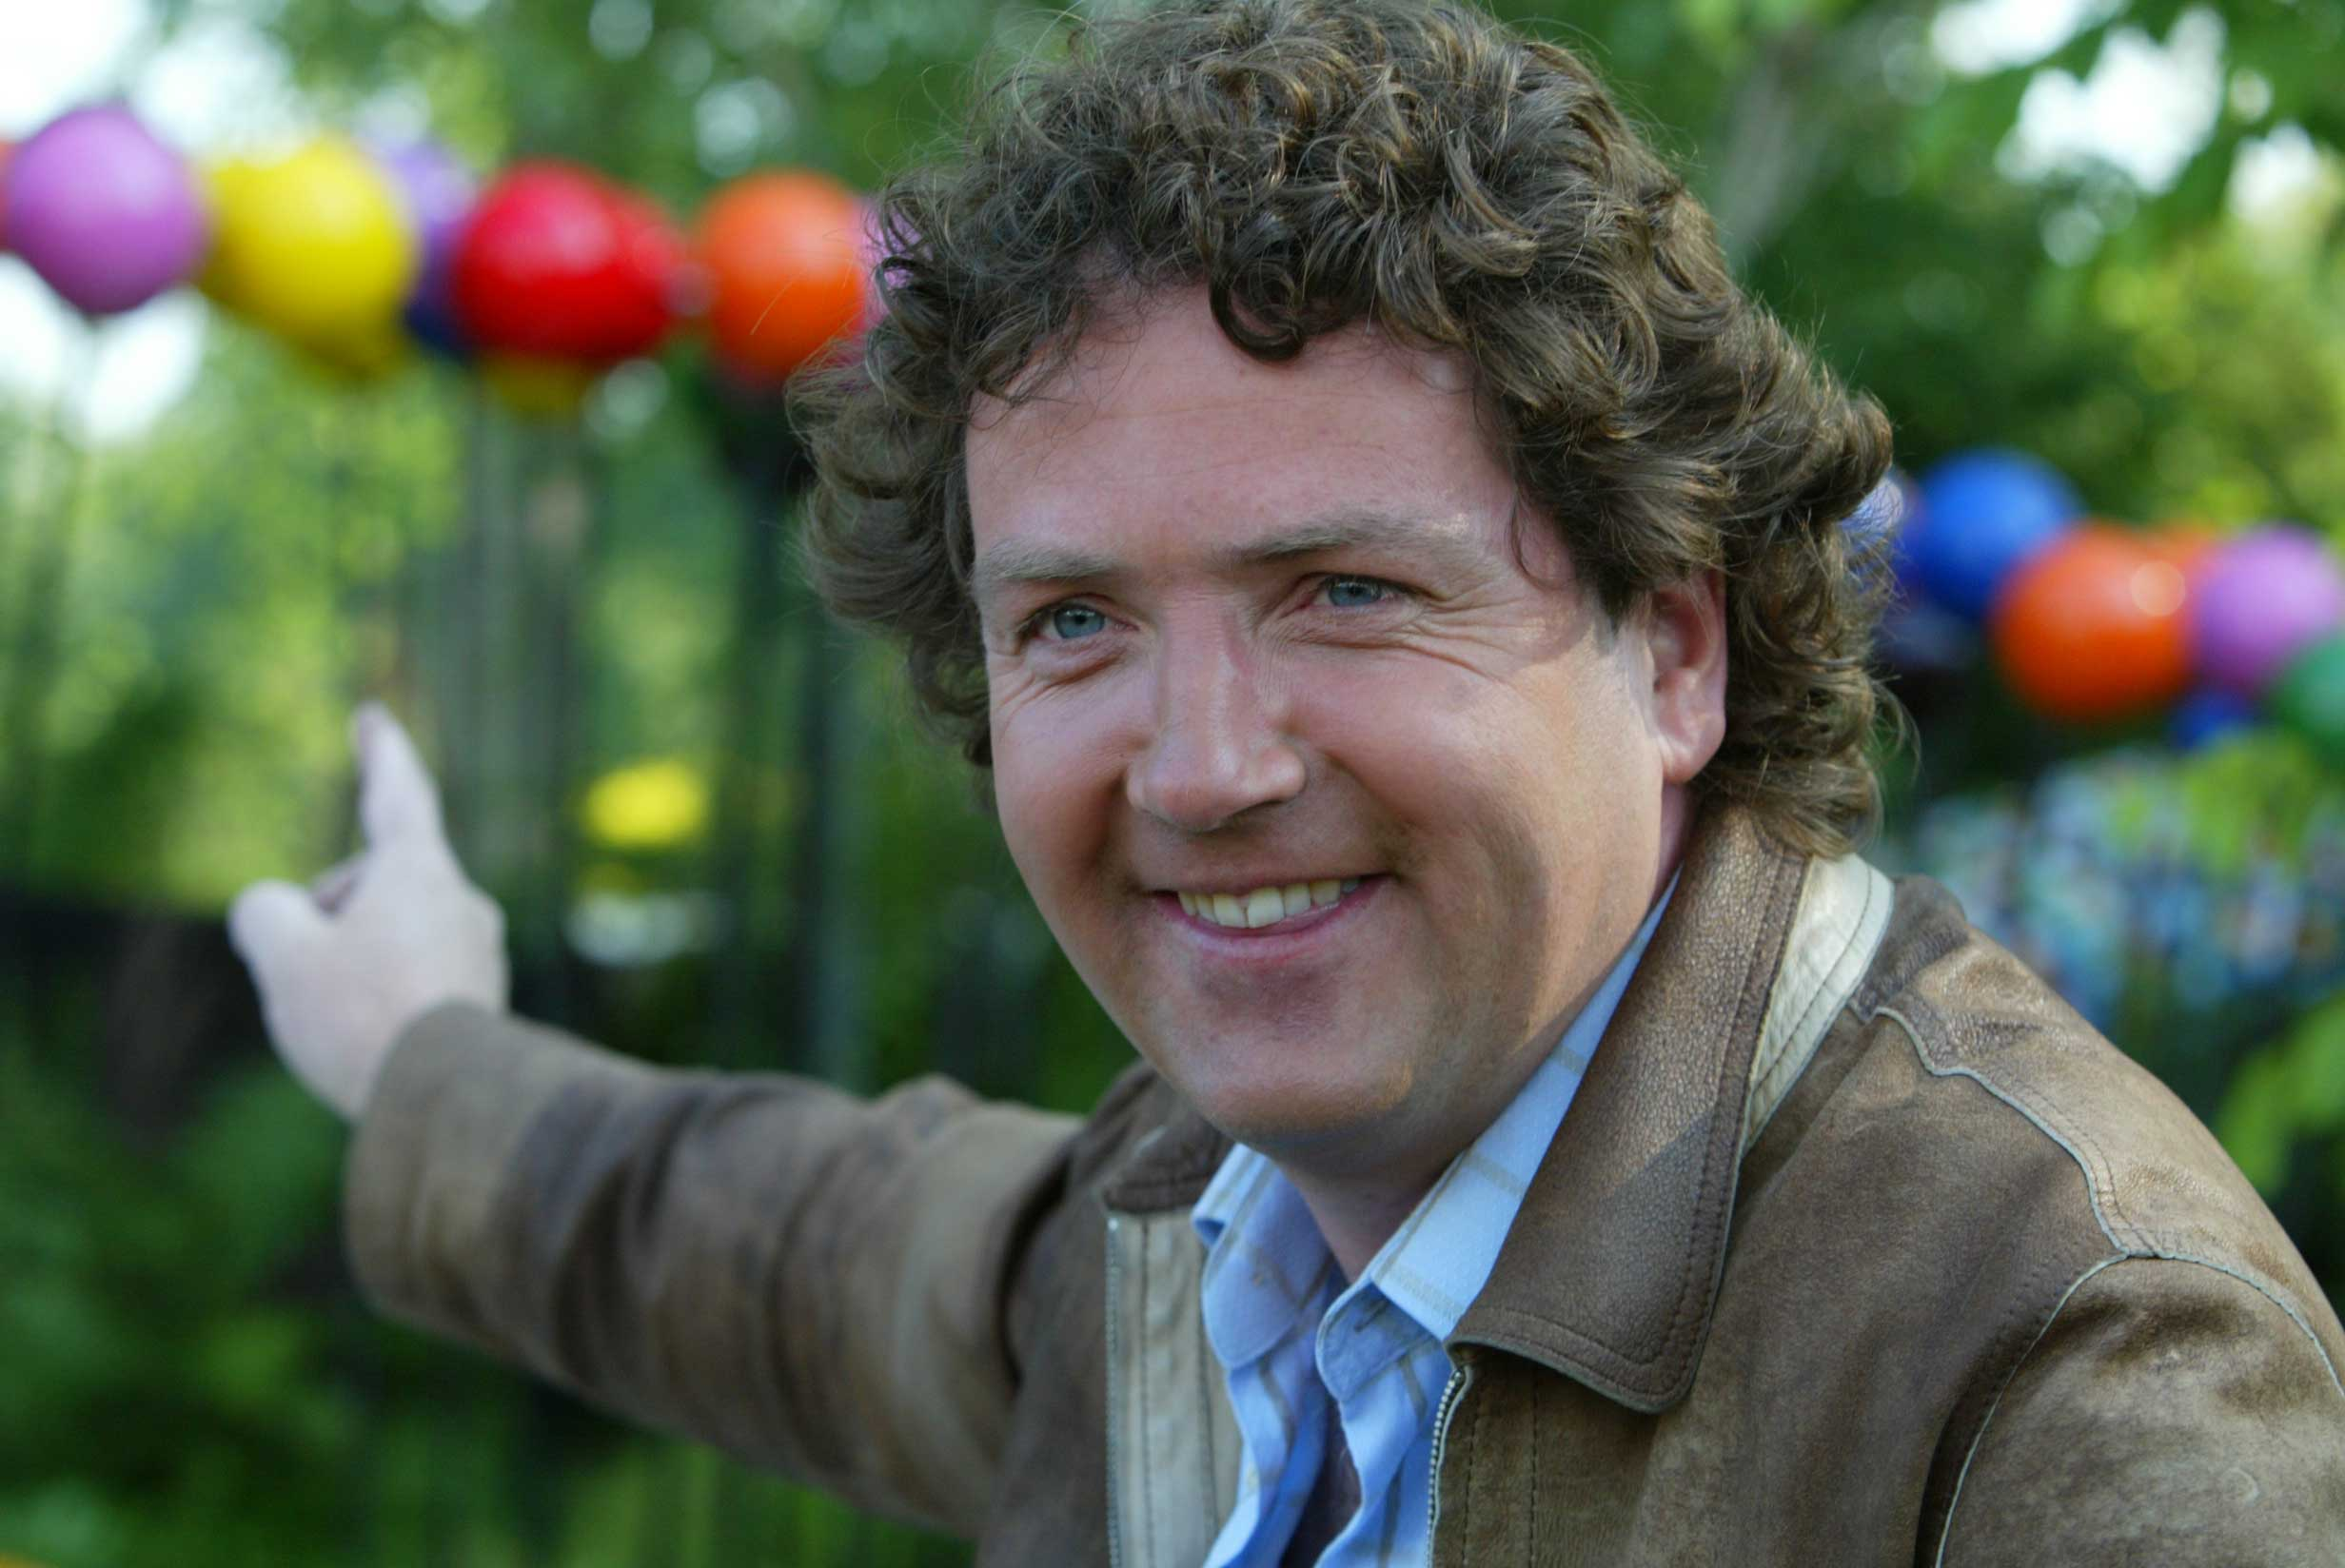 diarmuid gavin will be in the arboretum tonight for the carlow